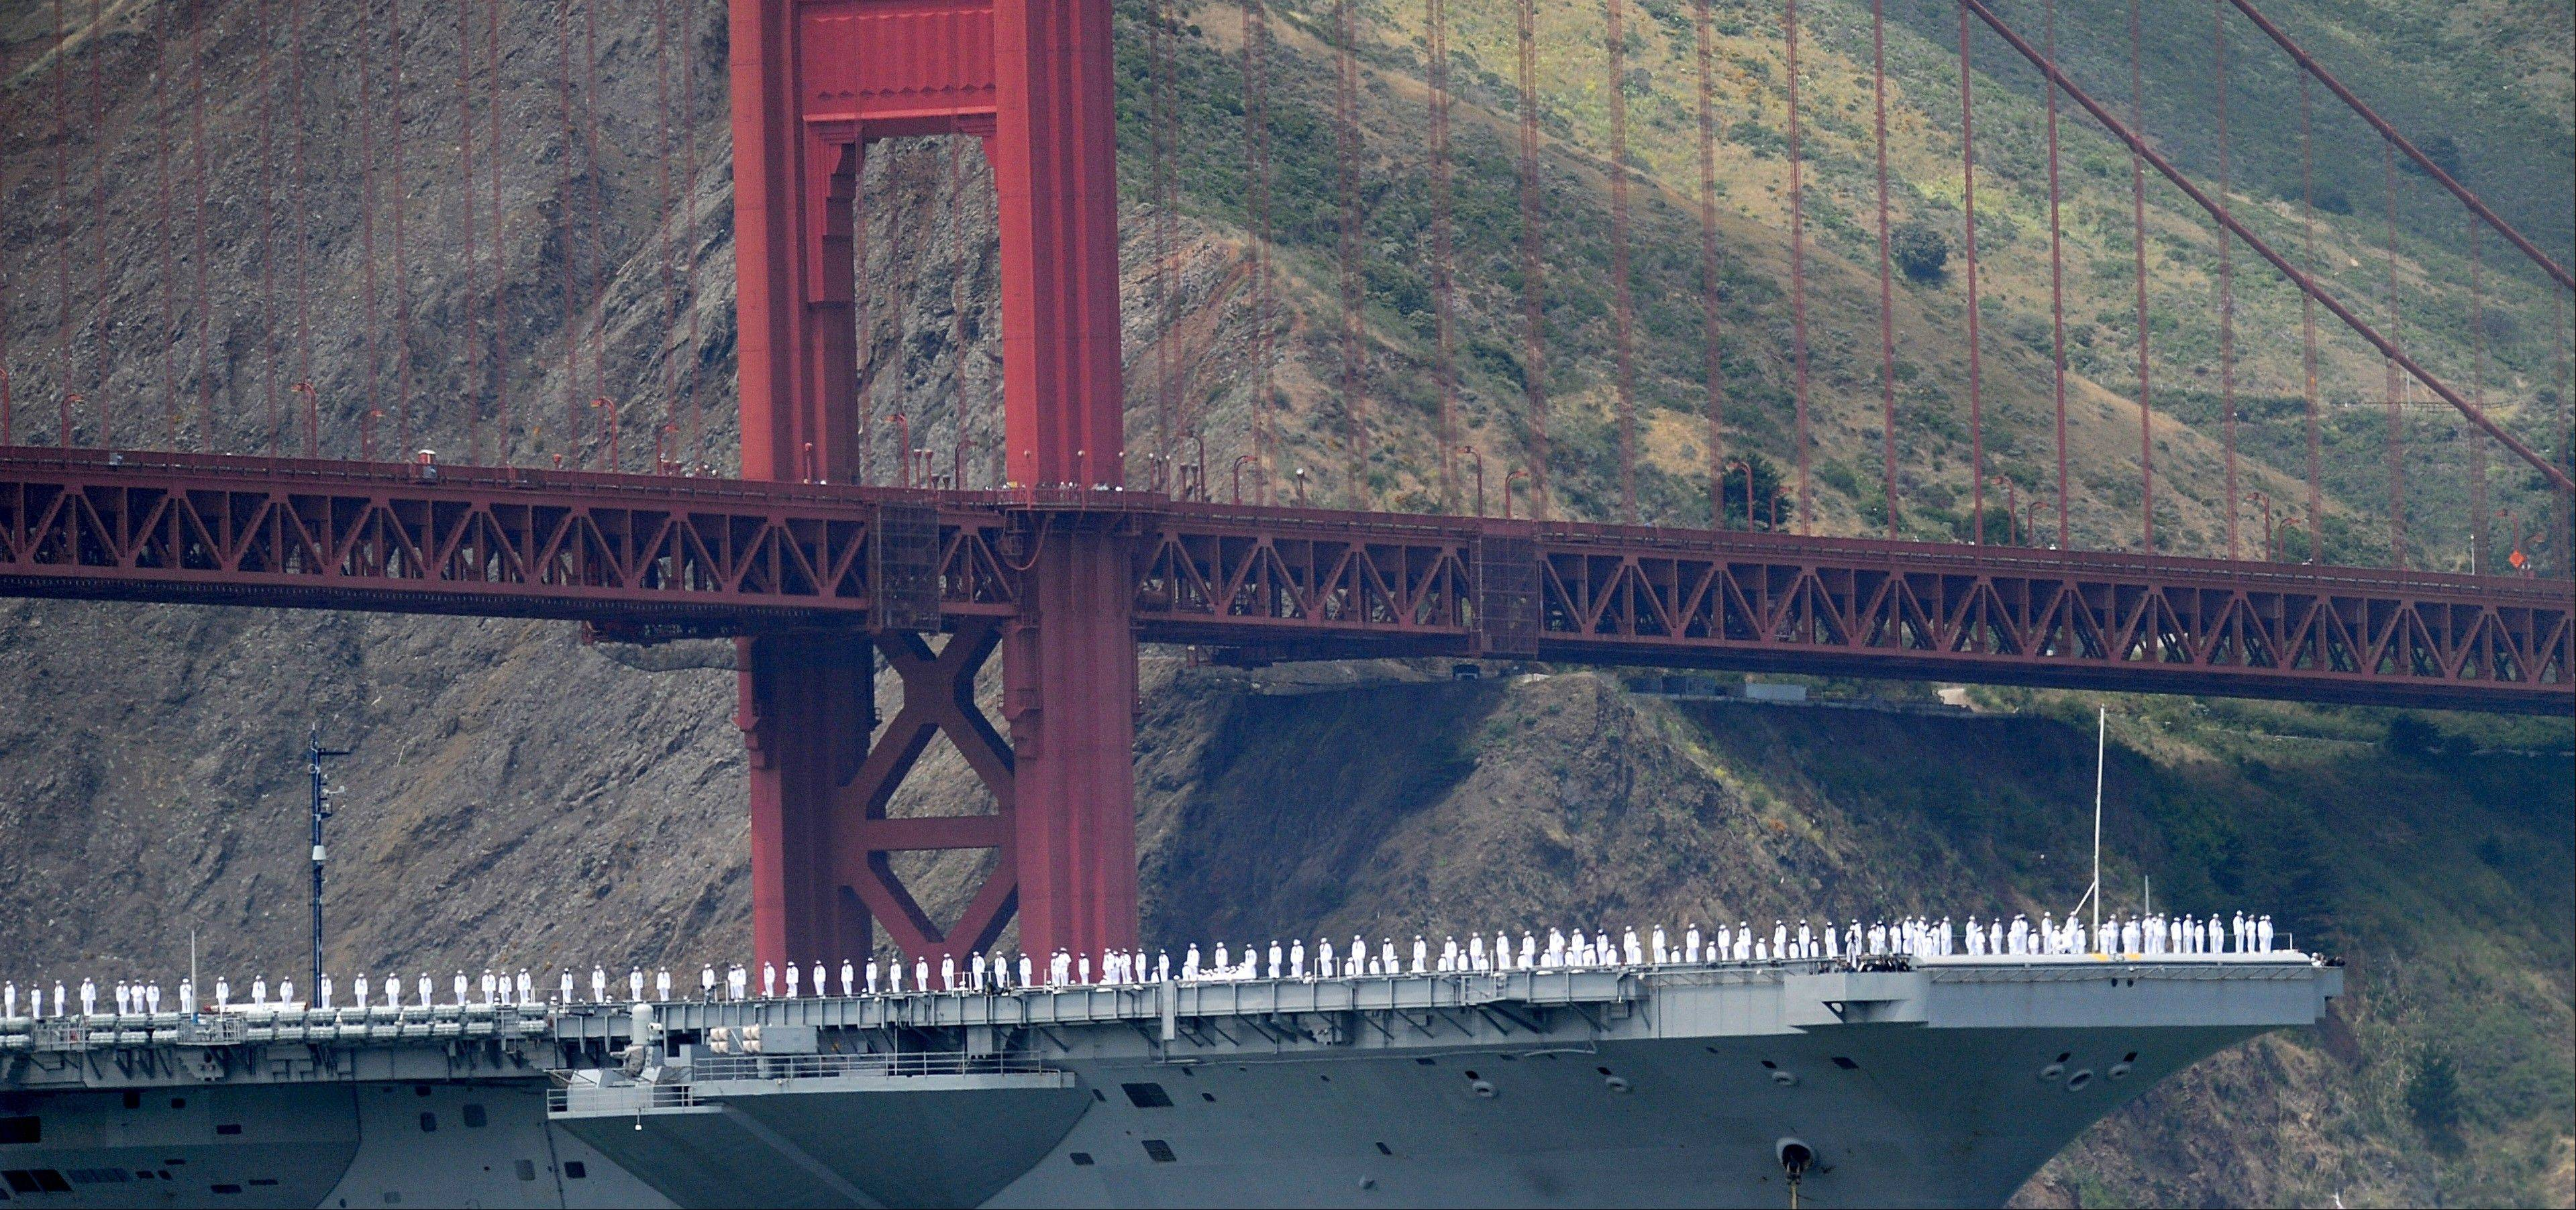 With sailors on deck, the USS Nimitz passes beneath the Golden Gate Bridge during a celebration of the bridge's 75th anniversary Sunday in San Francisco. The commemoration included a vintage car show, an exhibit of roughly 1,558 pairs of shoes representing people who have committed suicide by jumping from the span, and a fireworks display slated for evening.